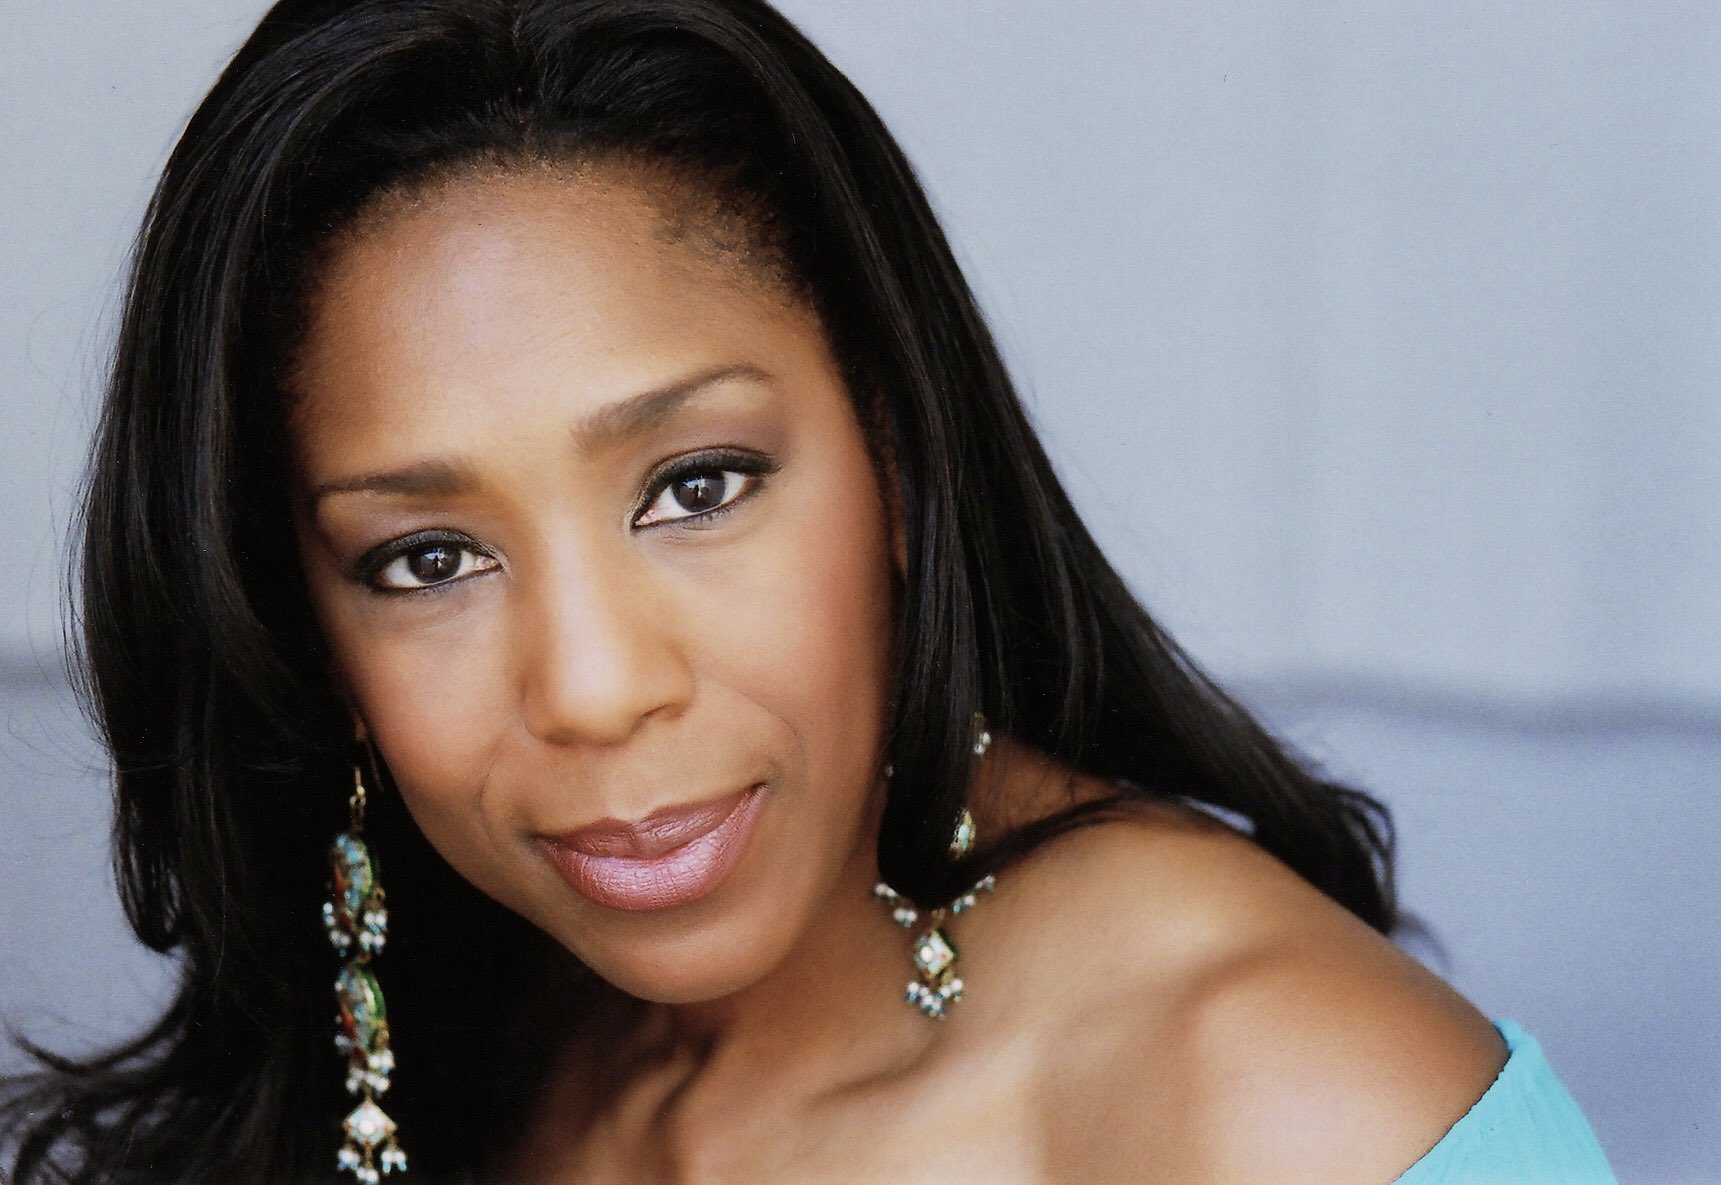 Happy Birthday to actress Dawnn Lewis from A Different World